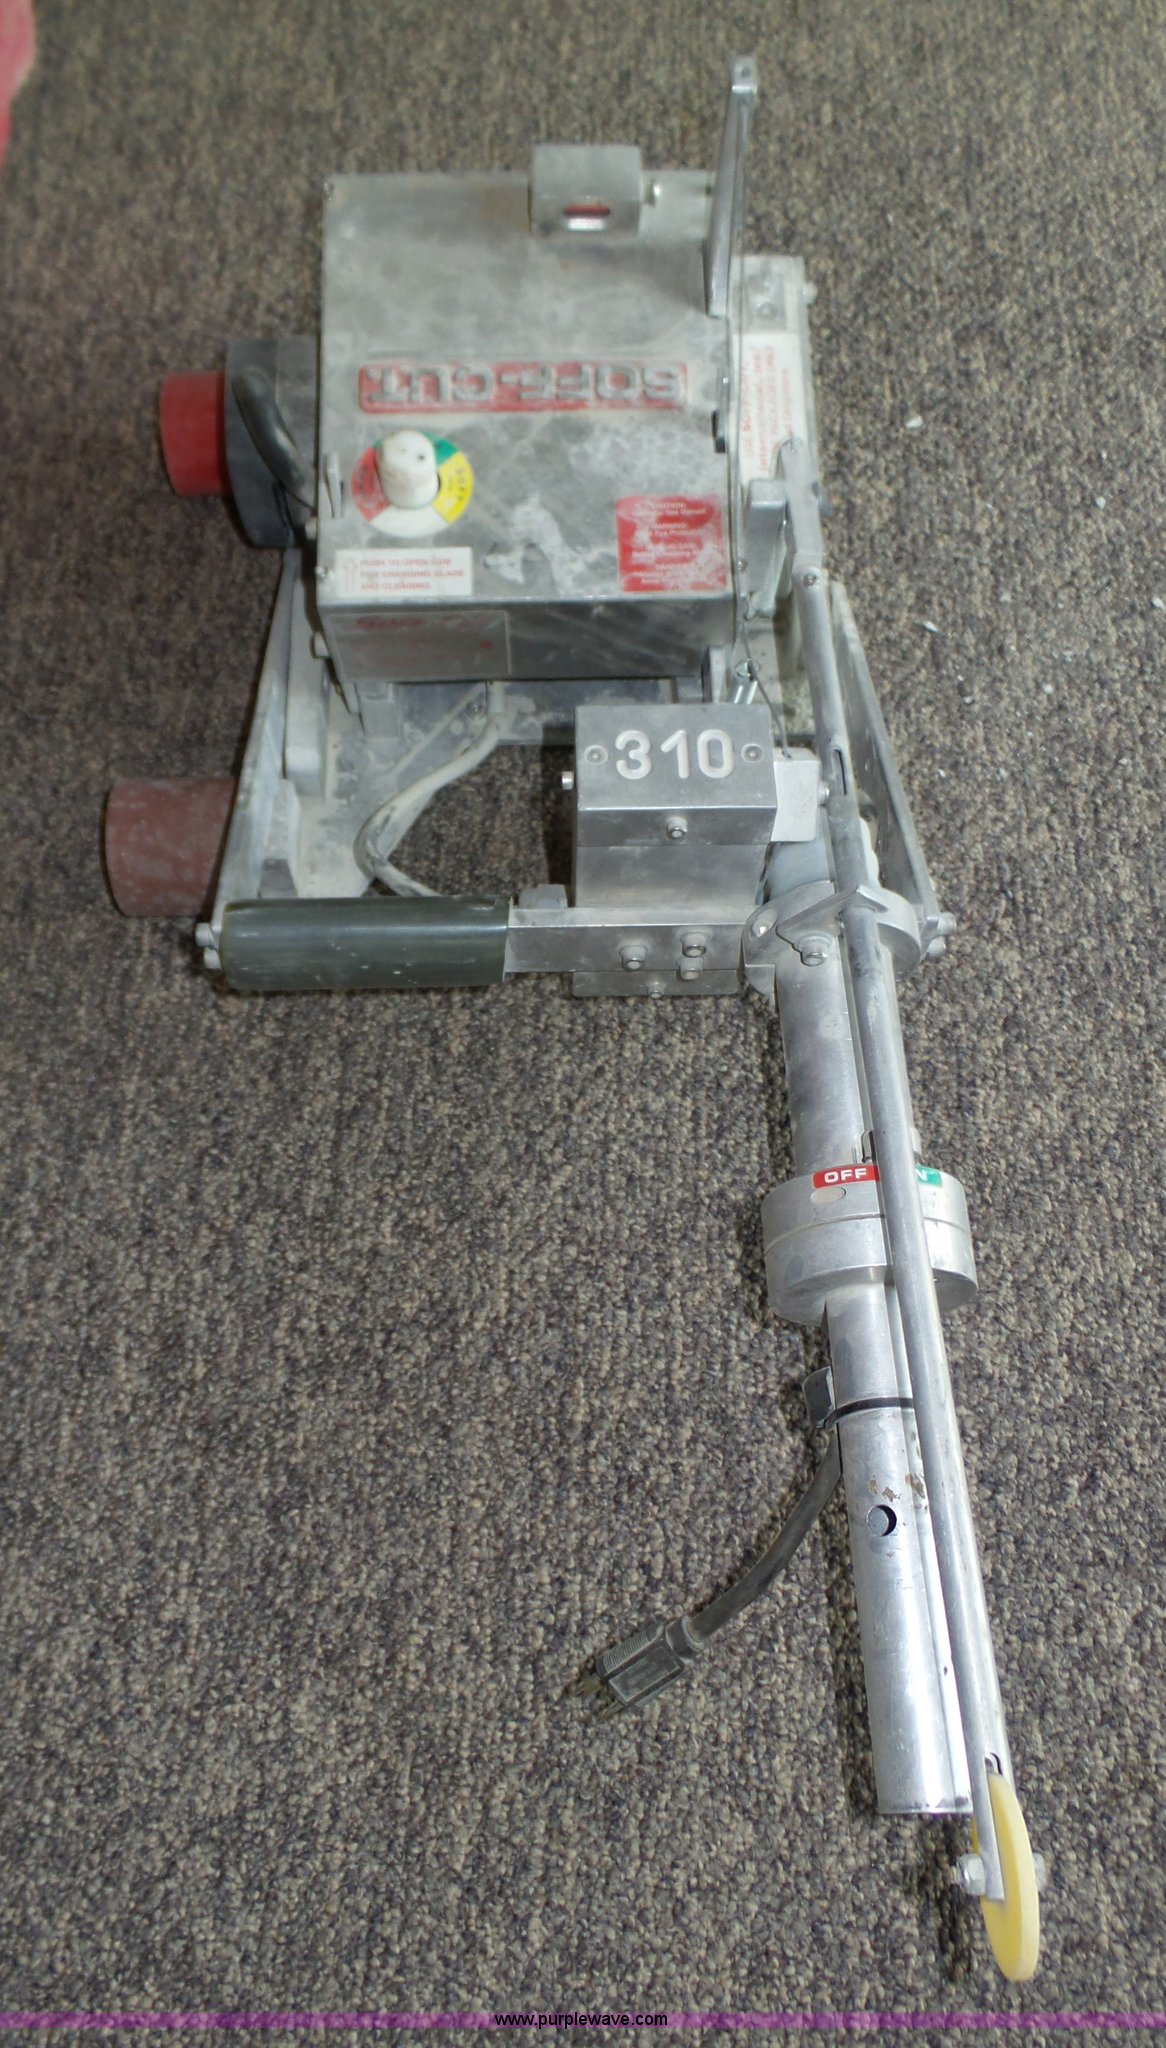 Soff Cut 310 Early Entry Concrete Saw Item Bx9020 Sold